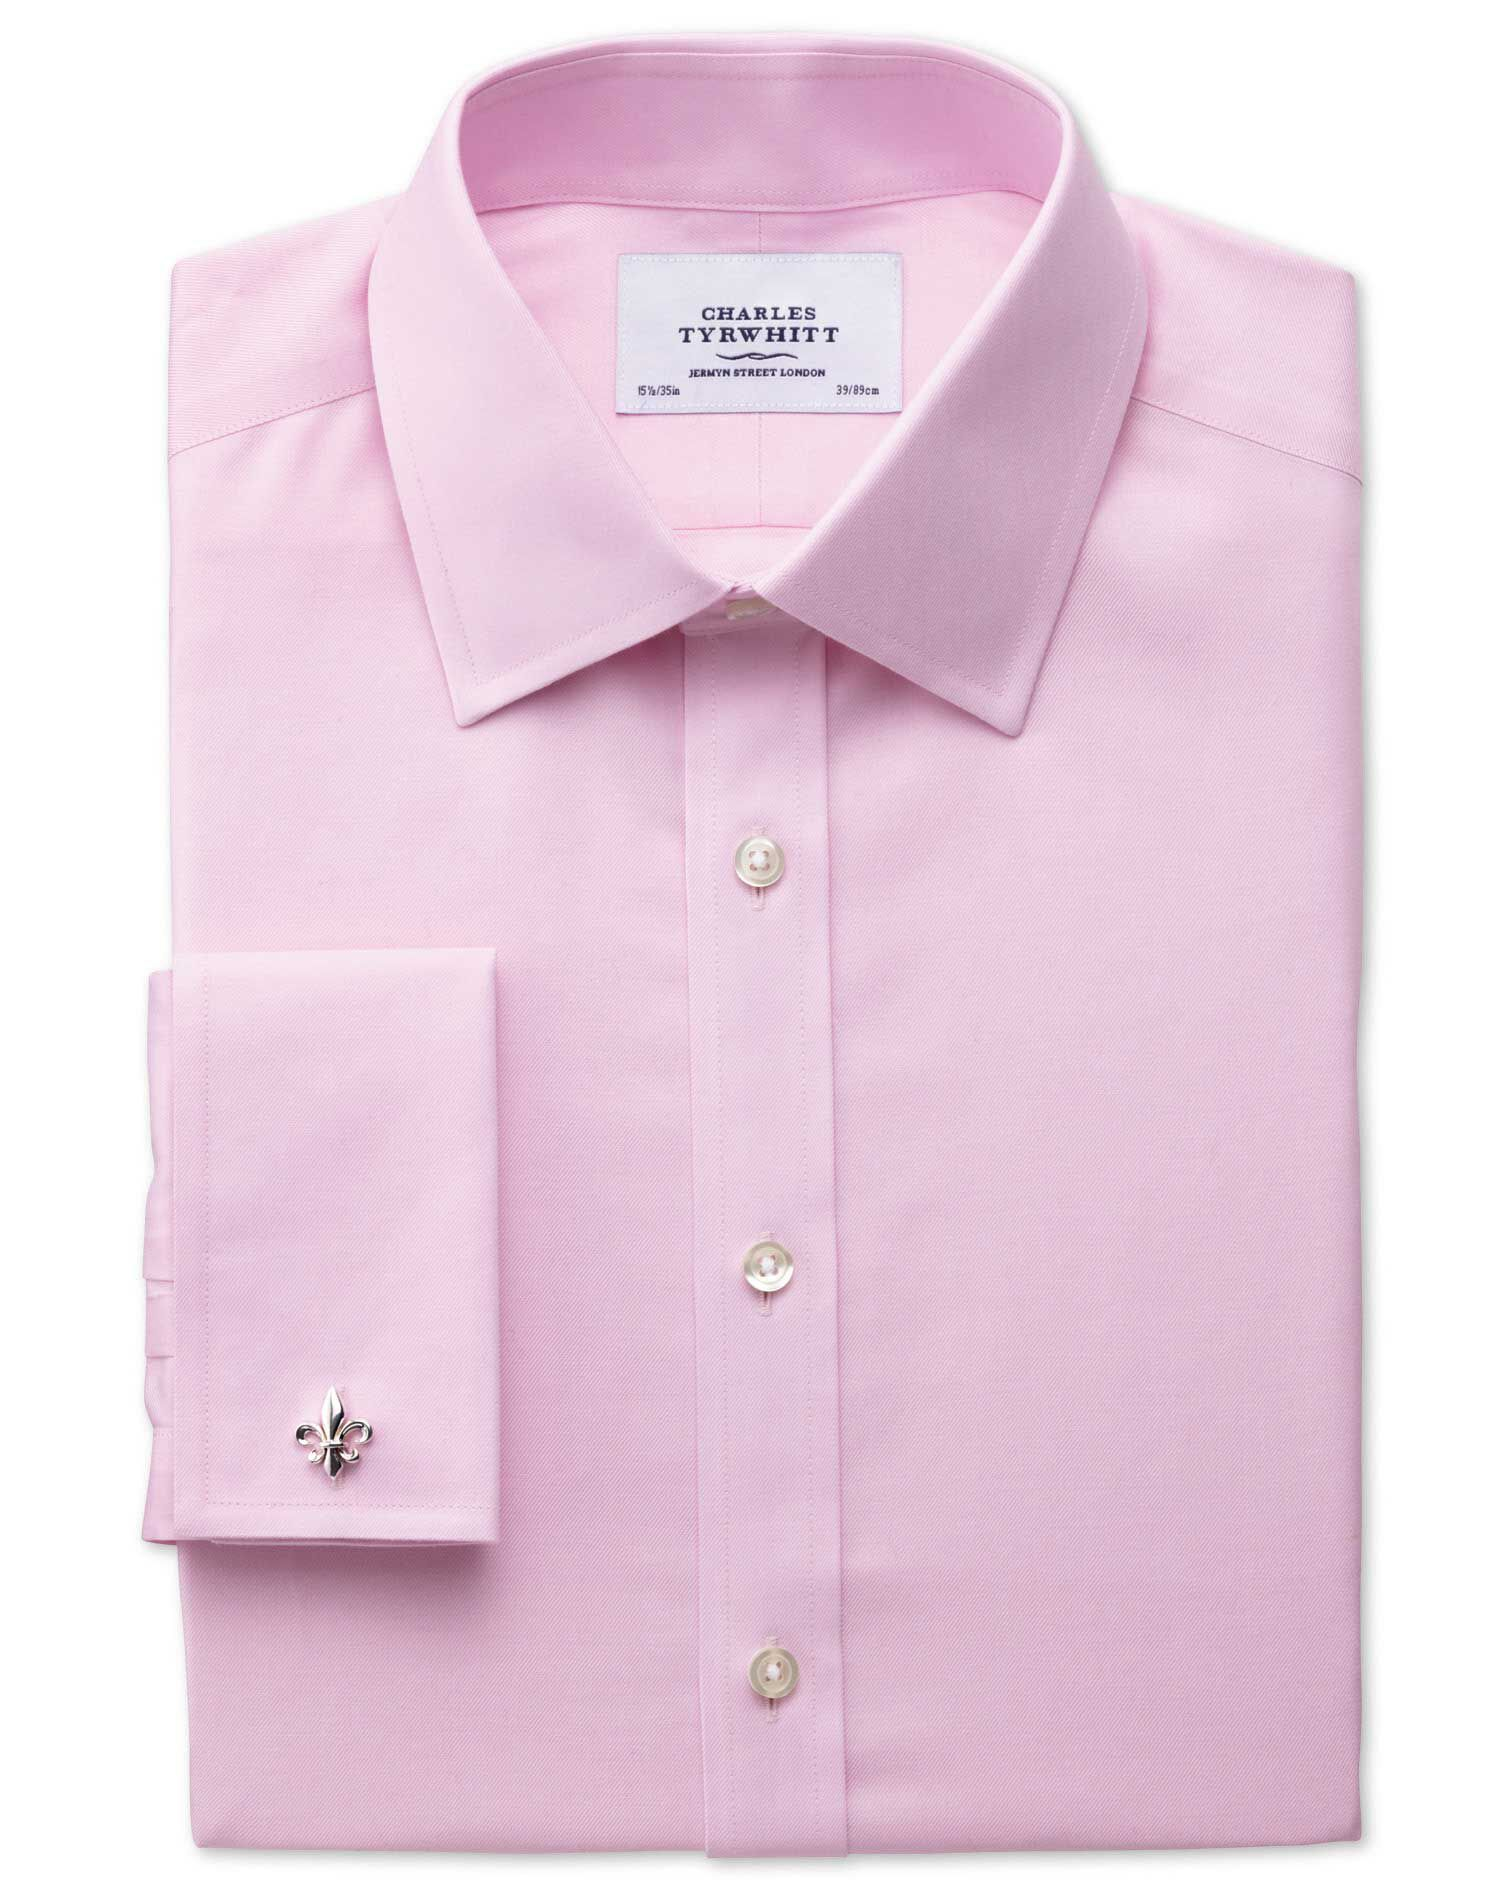 Extra Slim Fit Non-Iron Twill Pink Cotton Formal Shirt Double Cuff Size 17/35 by Charles Tyrwhitt